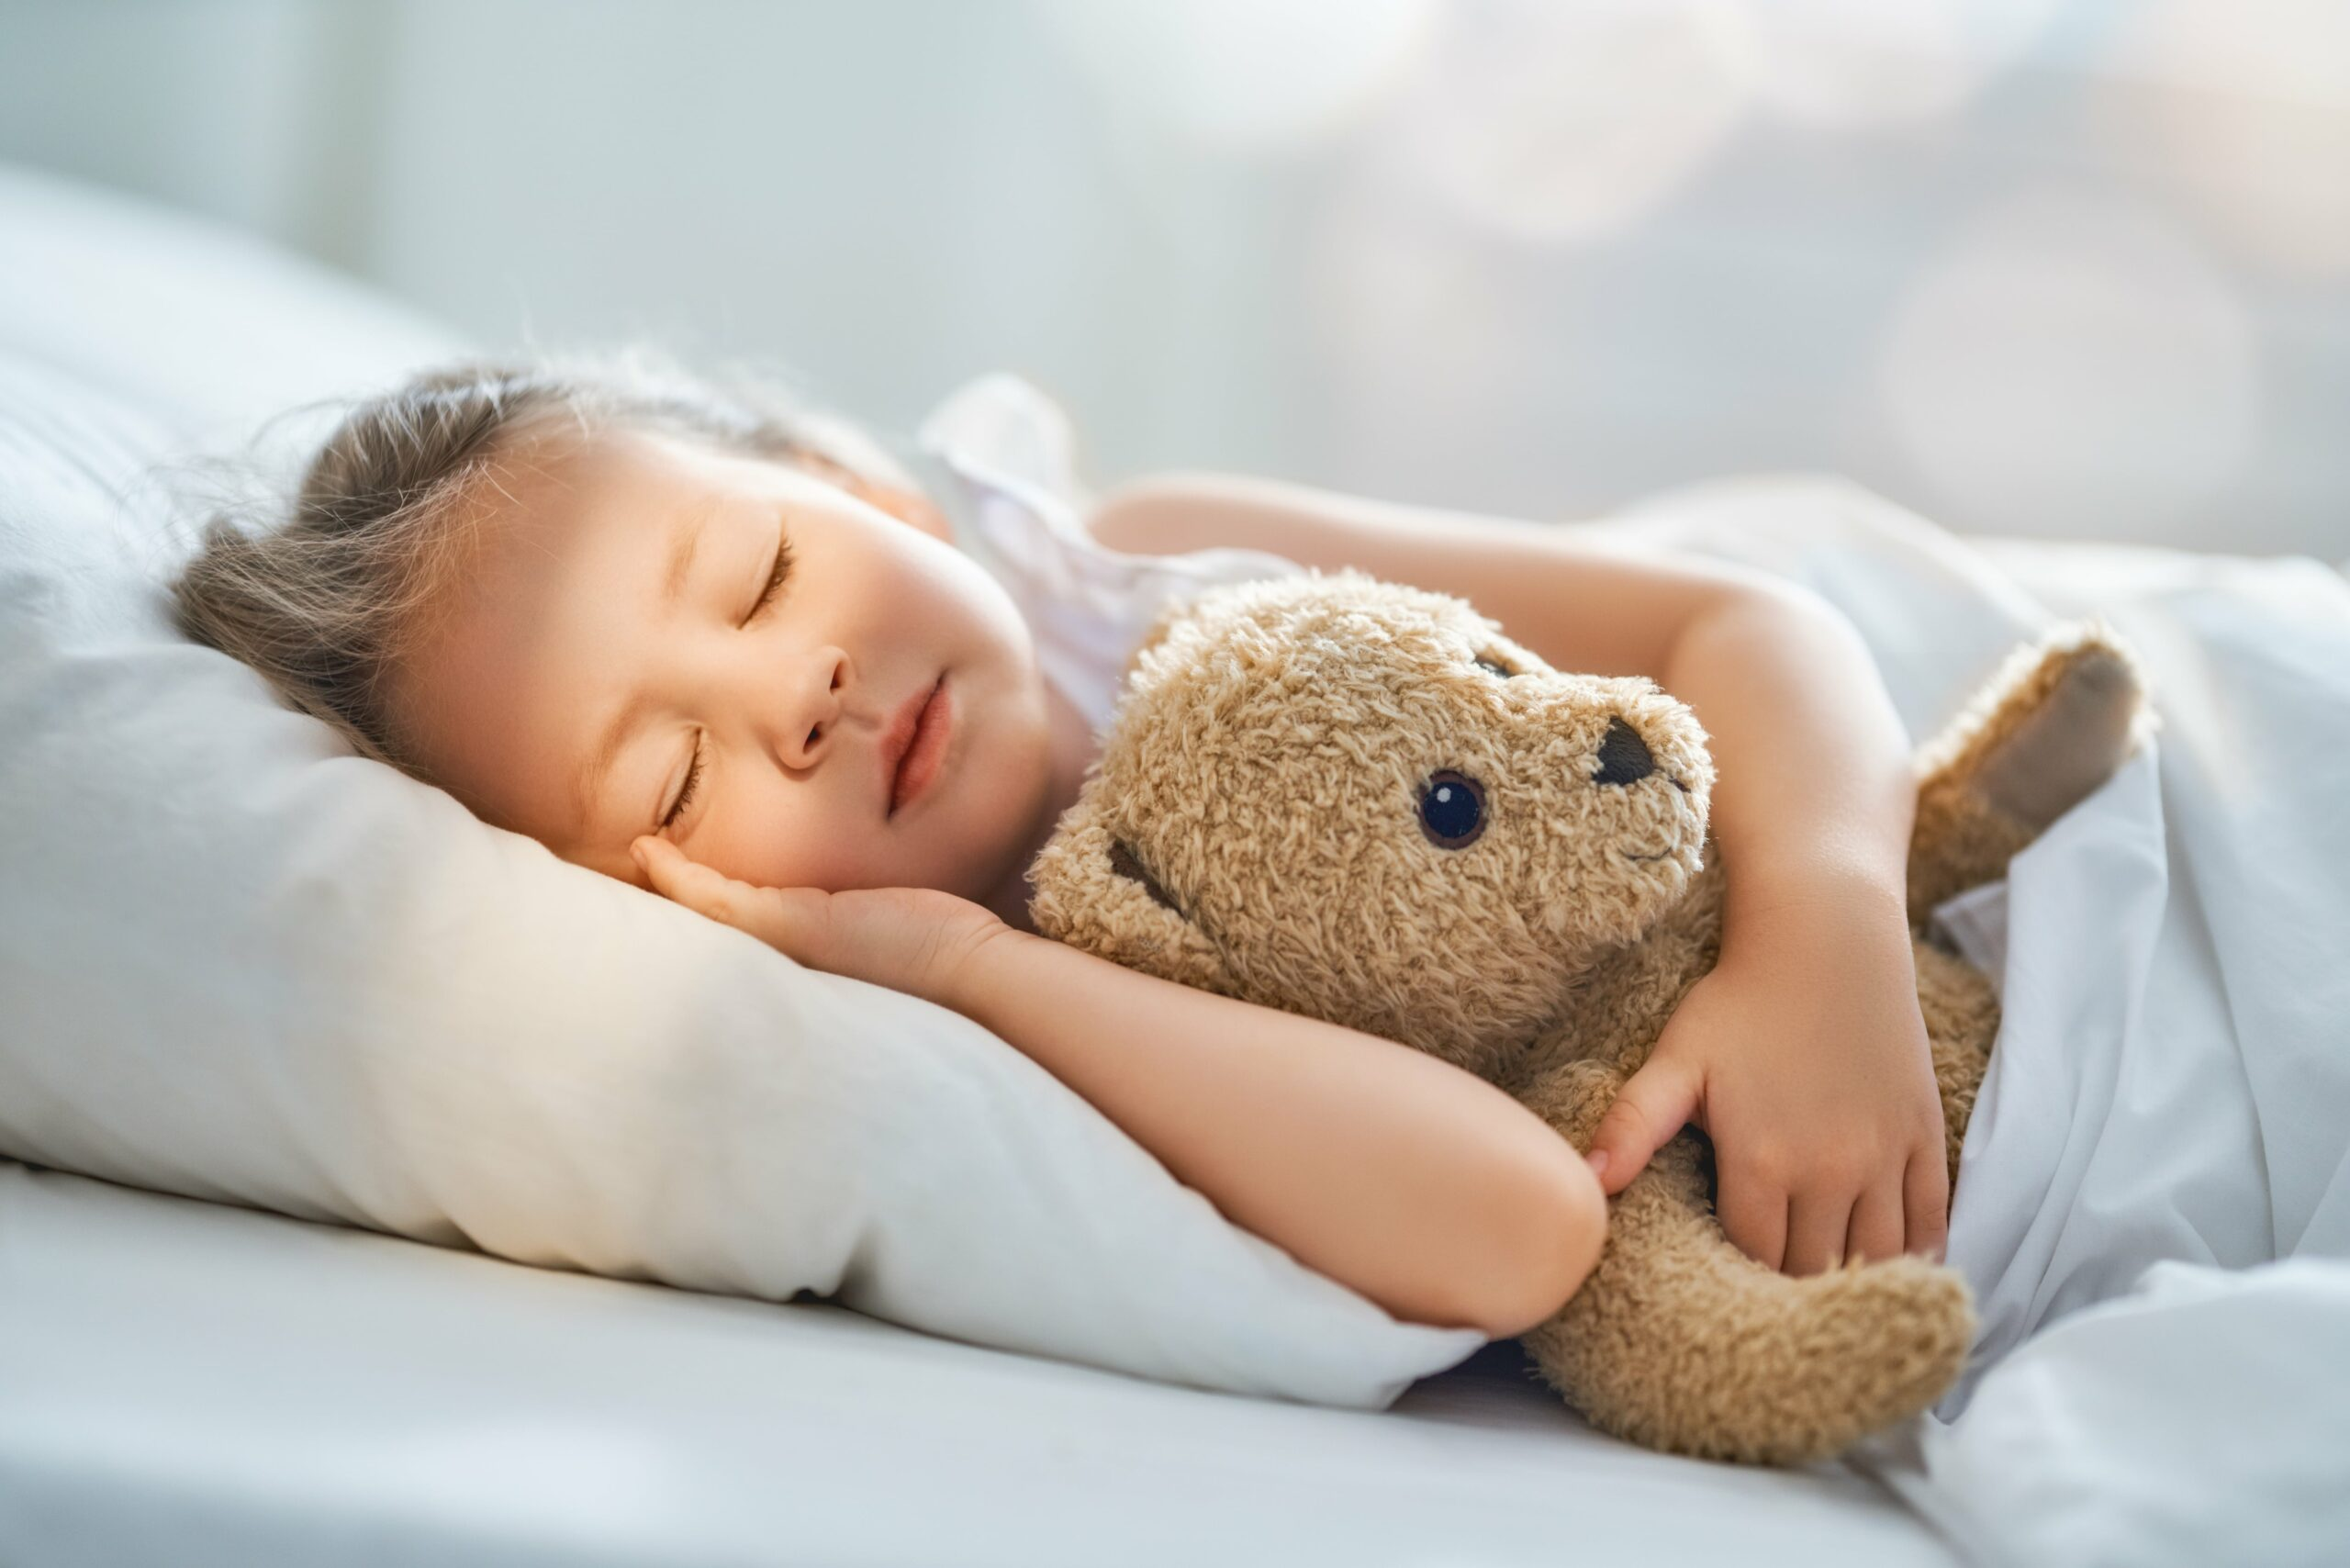 Young girl sleeping with a plush bear.